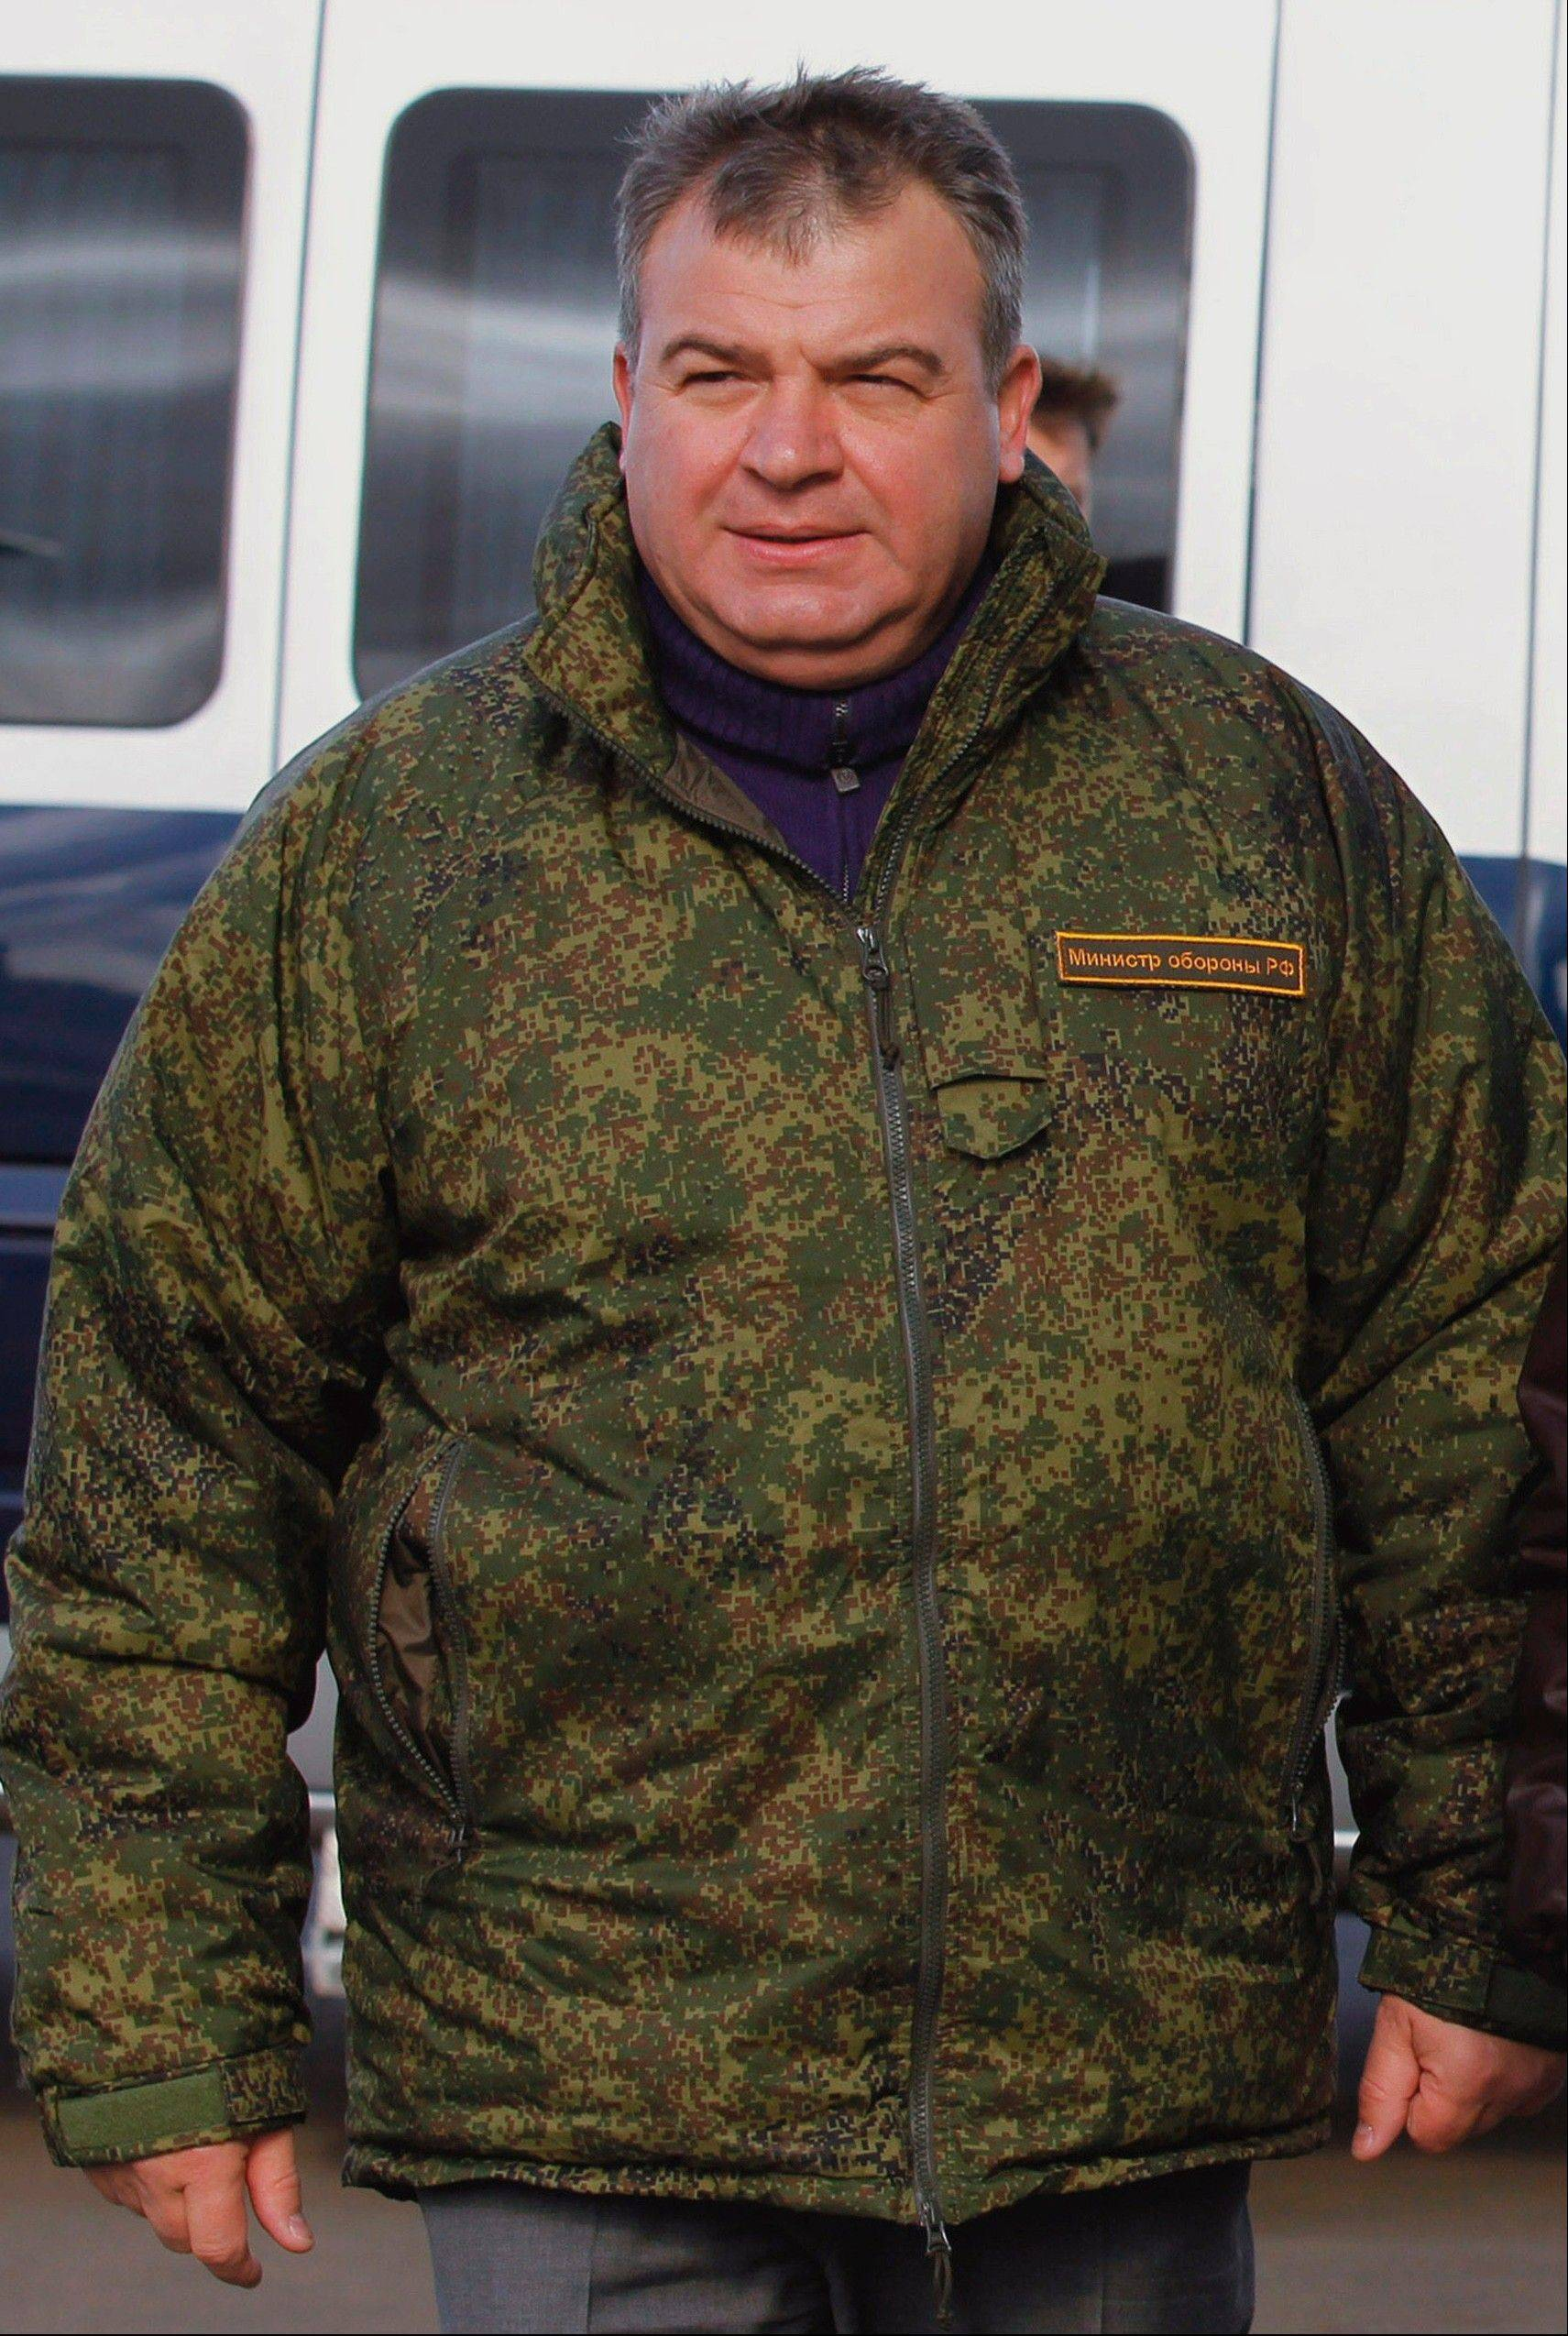 In this Tuesday, Sept. 27, 2011 file photo then Russian Defense Minister Anatoly Serdyukov walks during military maneuvers in the Chelyabinsk region of Russia. Russiaís main investigative agency filed charges against the former defense minister Thursday, Nov. 28, 2013, accusing him of using servicemen and government funds to build a road to a vacation home and do landscaping work on the property. If convicted, Serdyukov could face up to five years in prison.